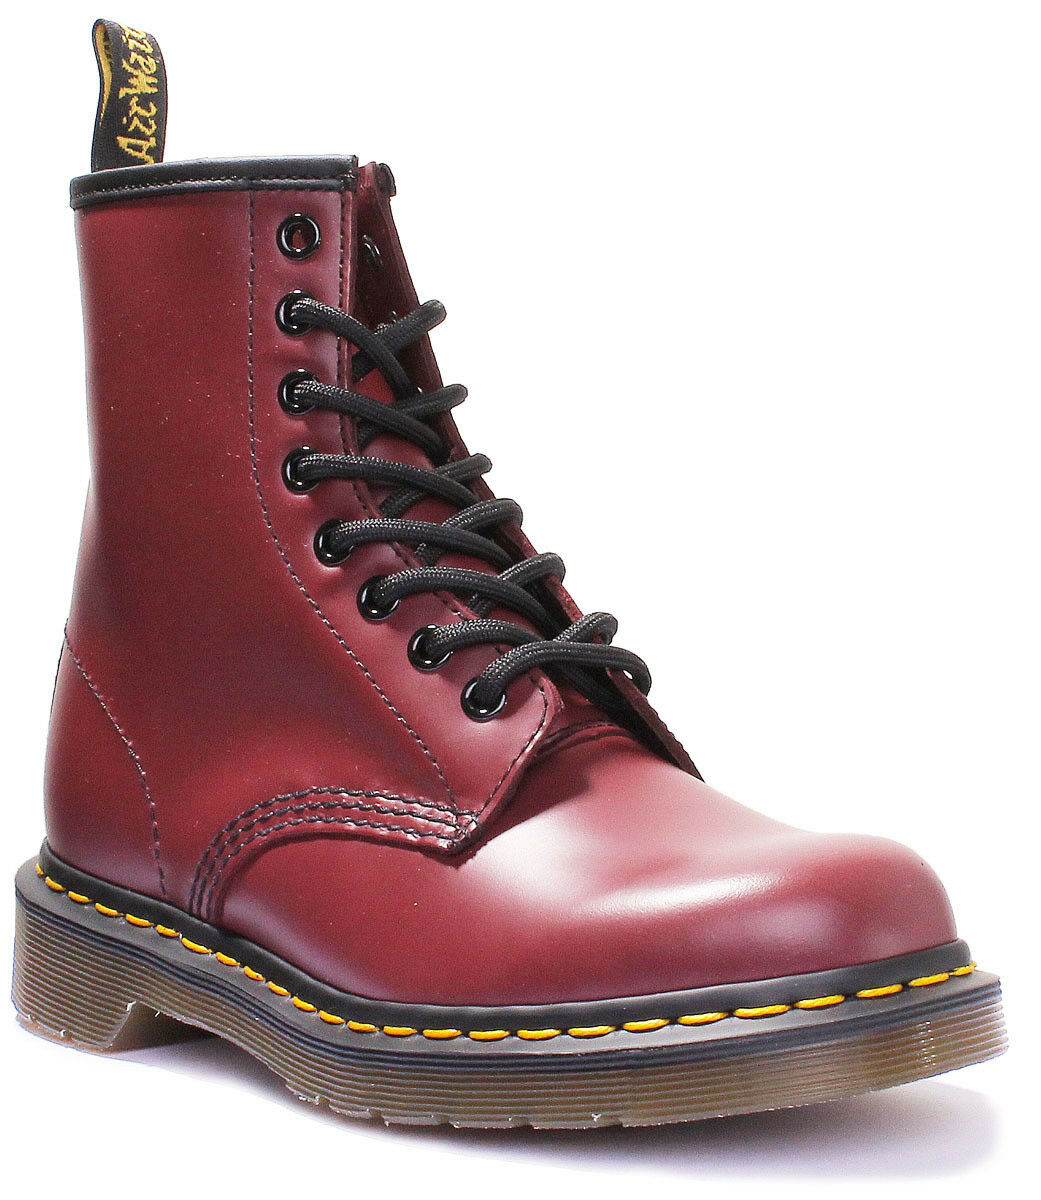 Dr Martens 1460 Smooth Unisex Cherry Red Leather Matt Boots